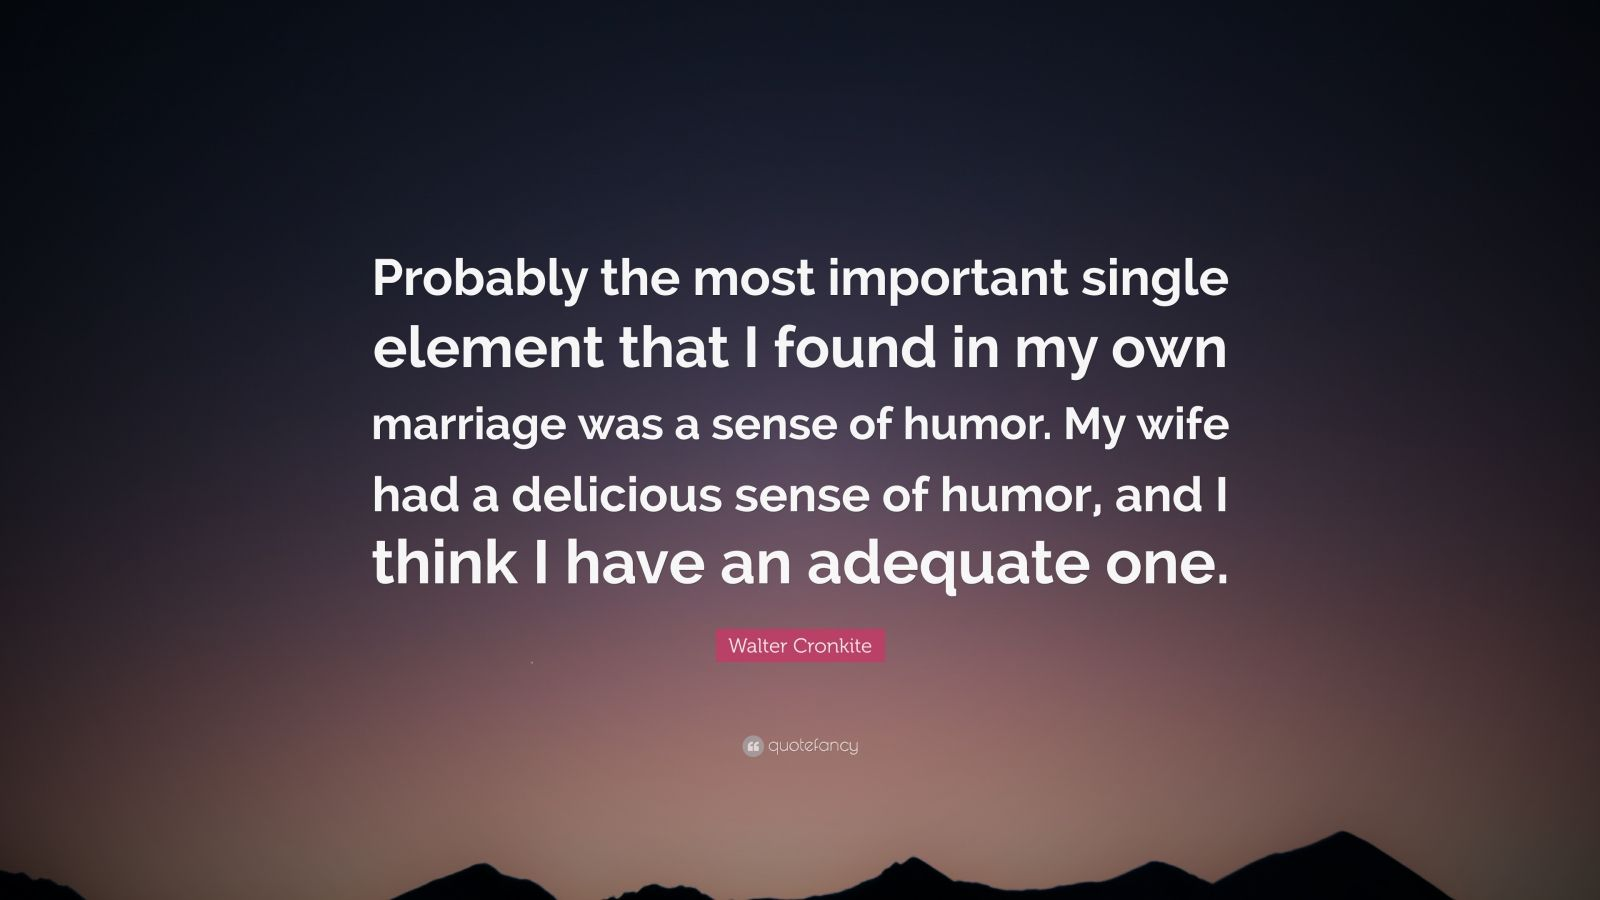 """Walter Cronkite Quote: """"Probably the most important single element that I found in my own marriage was a sense of humor. My wife had a delicious sense of humor, and I think I have an adequate one."""""""